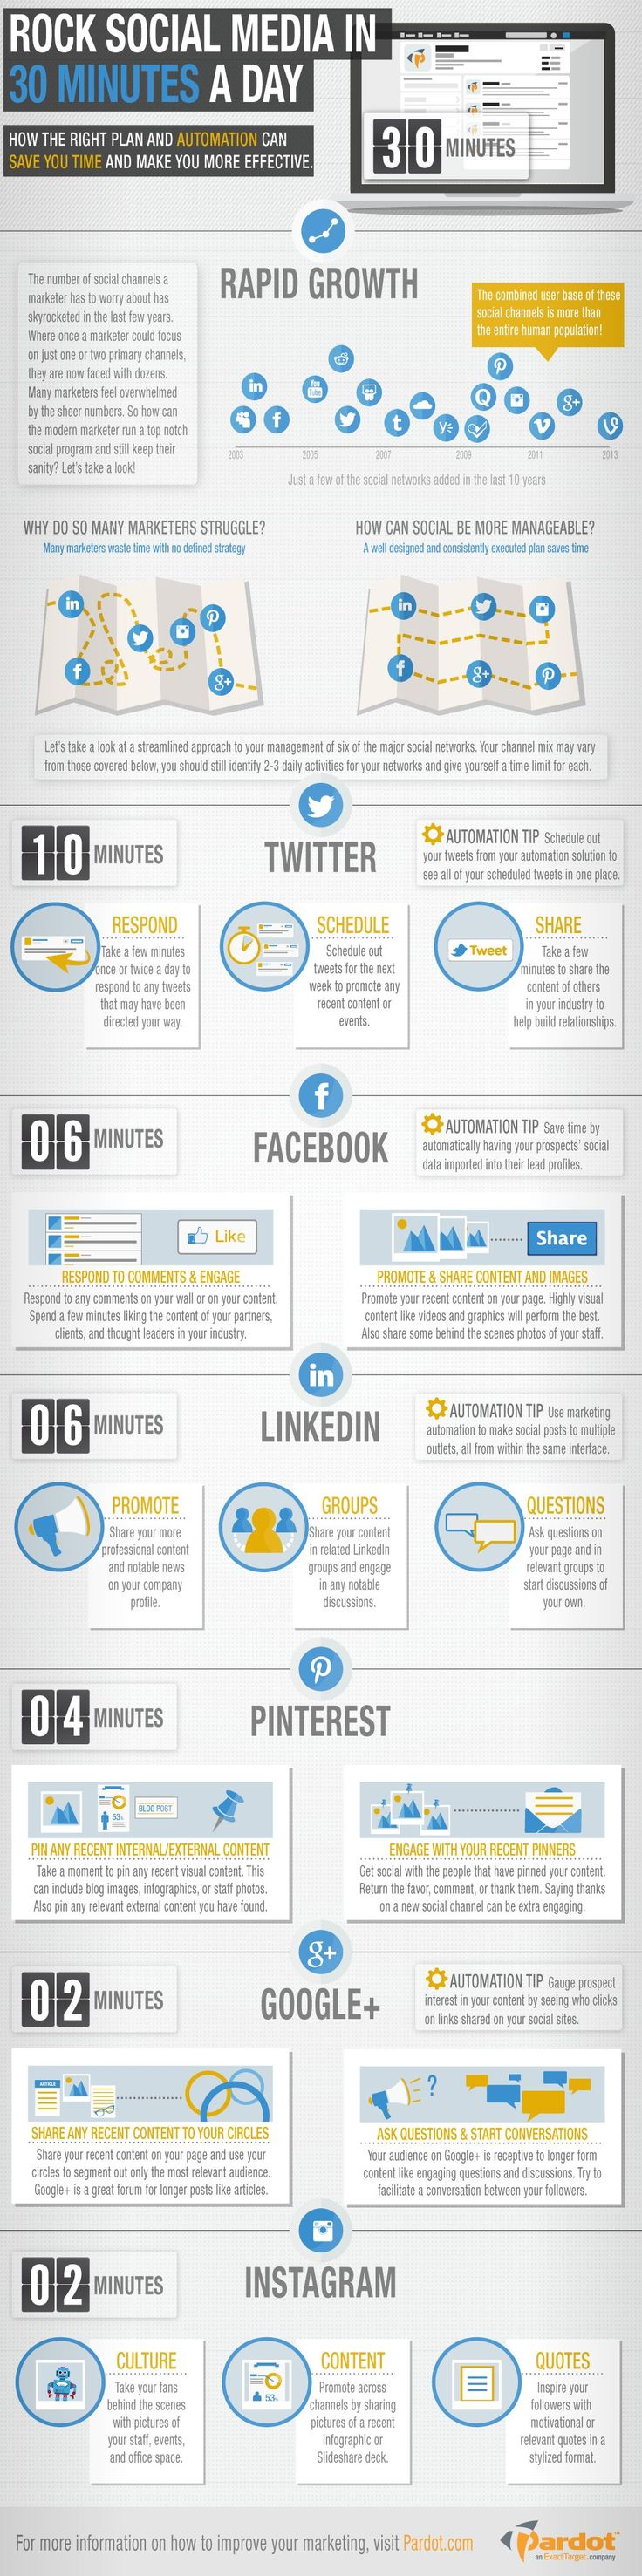 Rock Social Media in 30 Minutes a Day [INFOGRAPHIC] - An Infographic from Pardot  How Often Should I Post to Get Visibility?  Click to Read the article: http://denisewakeman.com/online-visibility/ask-denise/ask-denise-how-often-should-i-post-to-get-visibility/  #visibilitytip #onlinevisibility #infographic Grow your business on auto-pilot